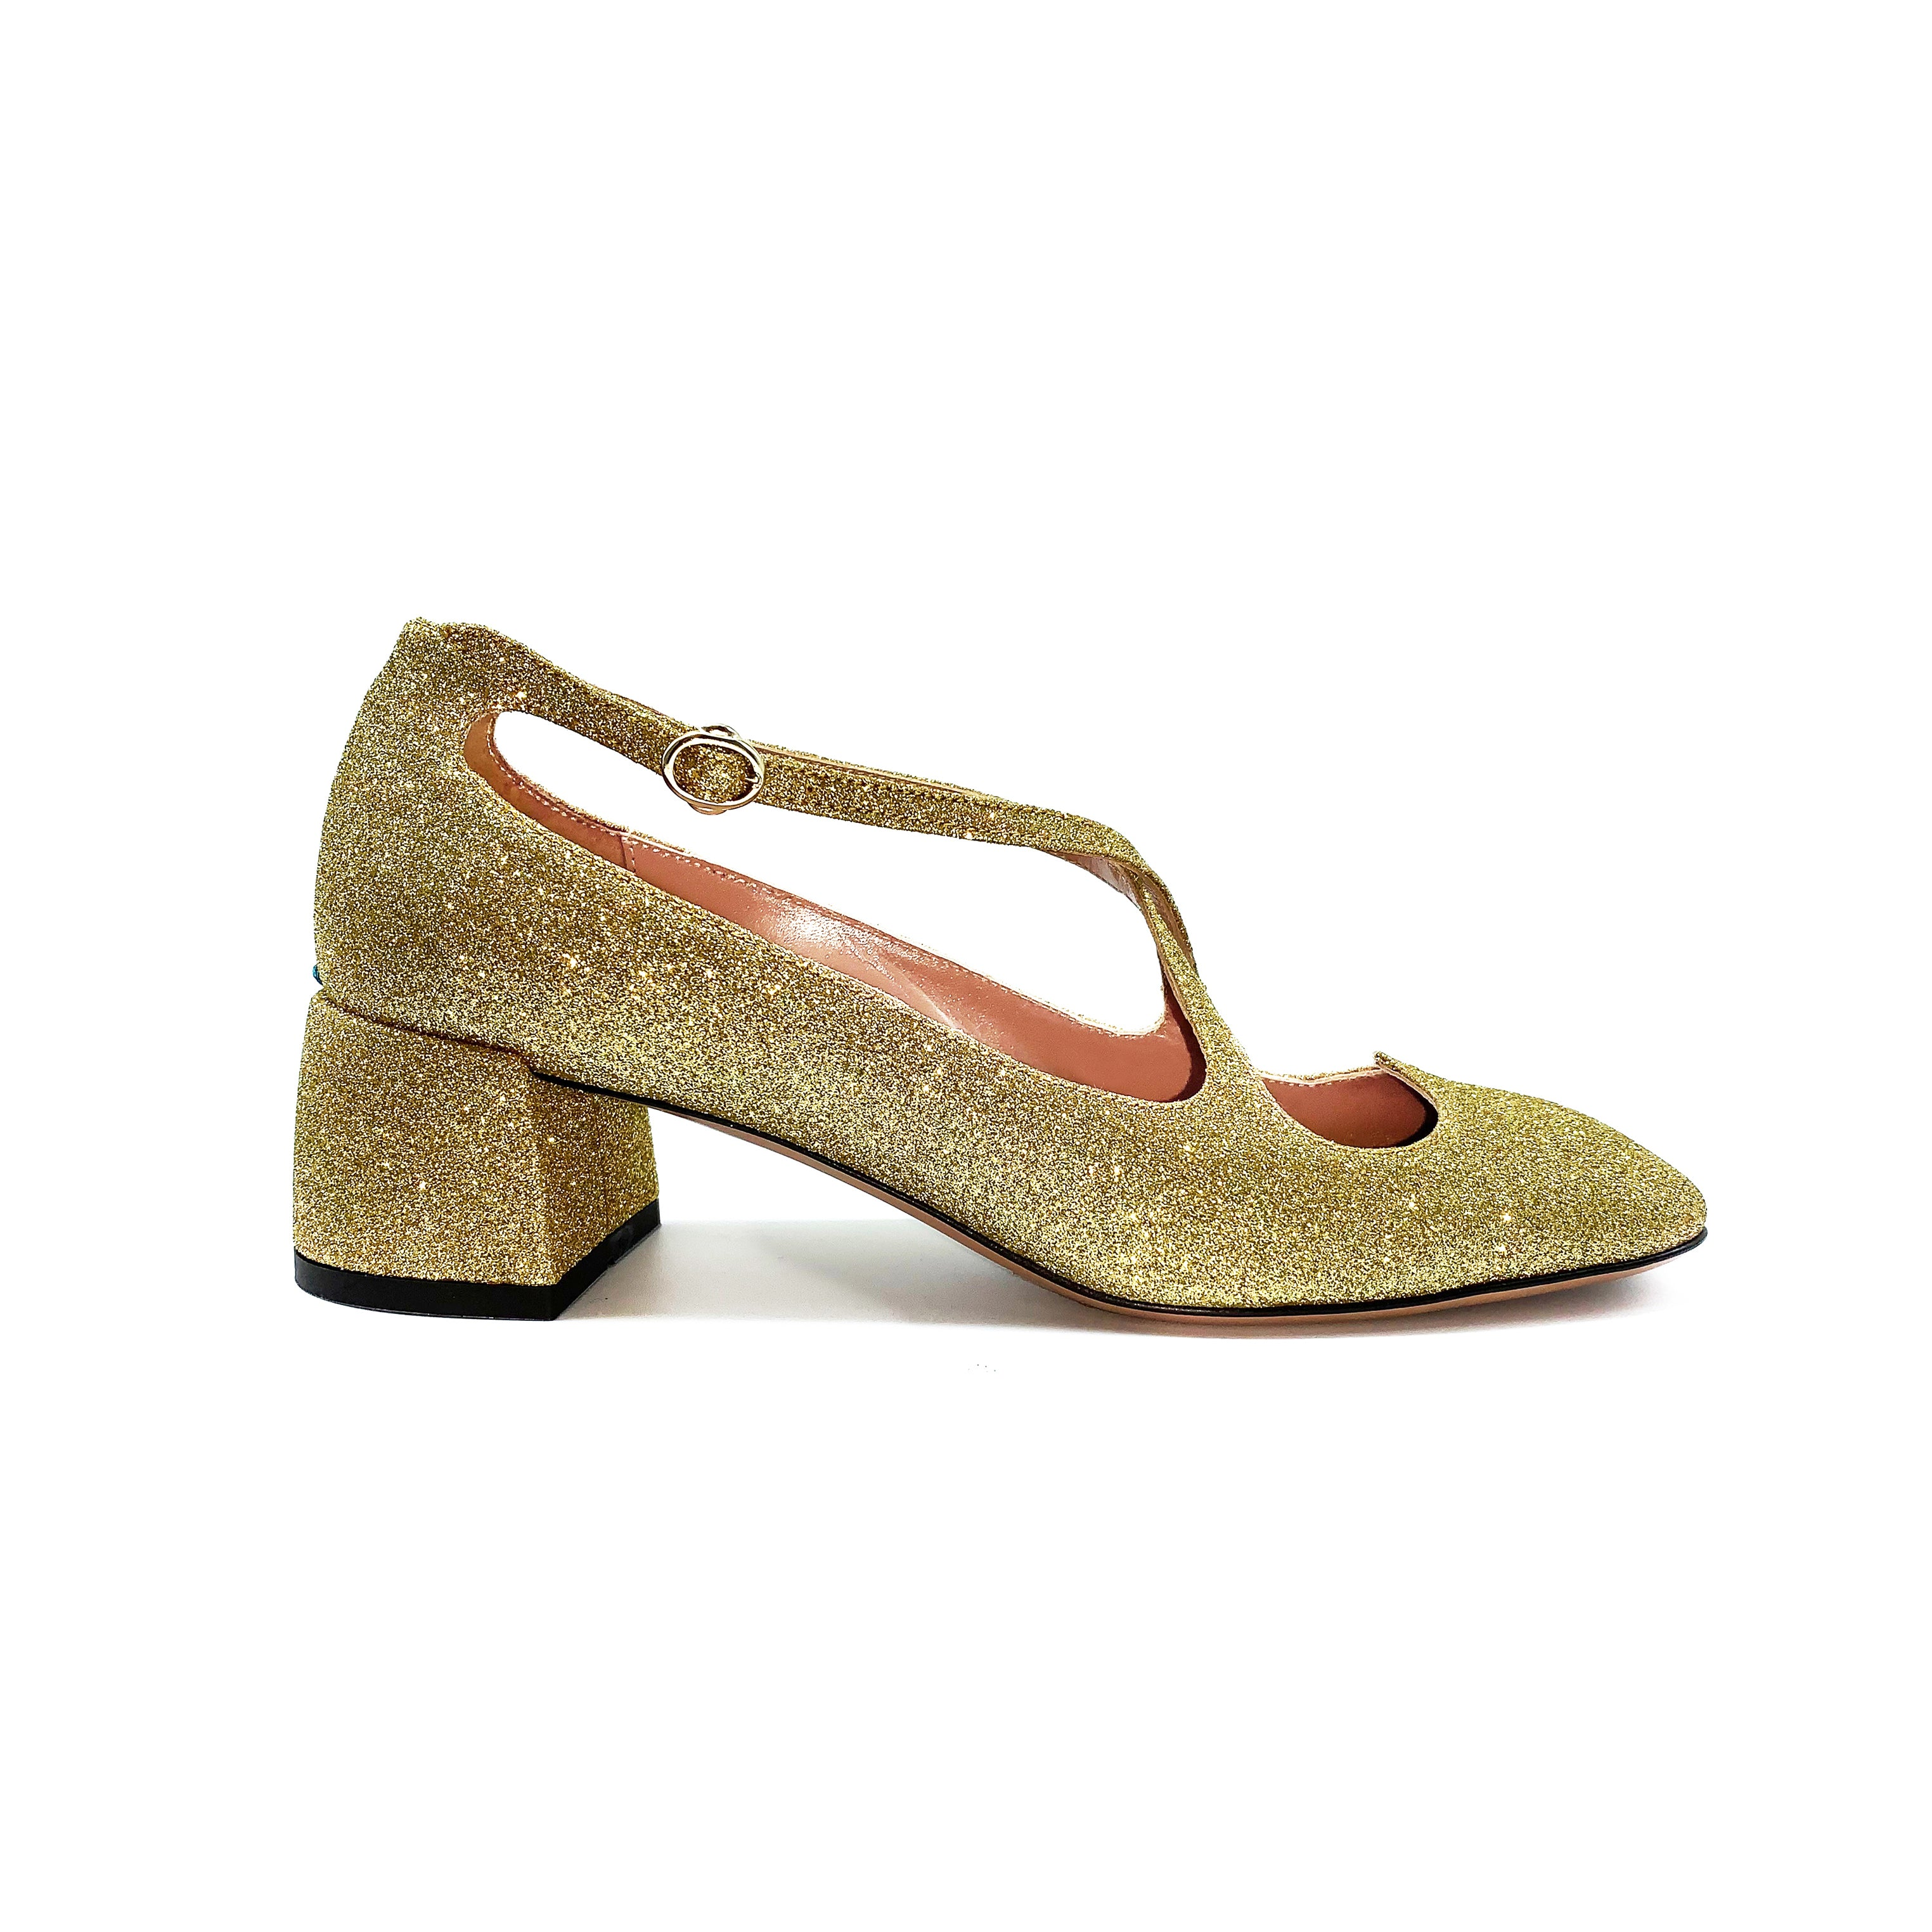 Pump Two for Love in glitter oro